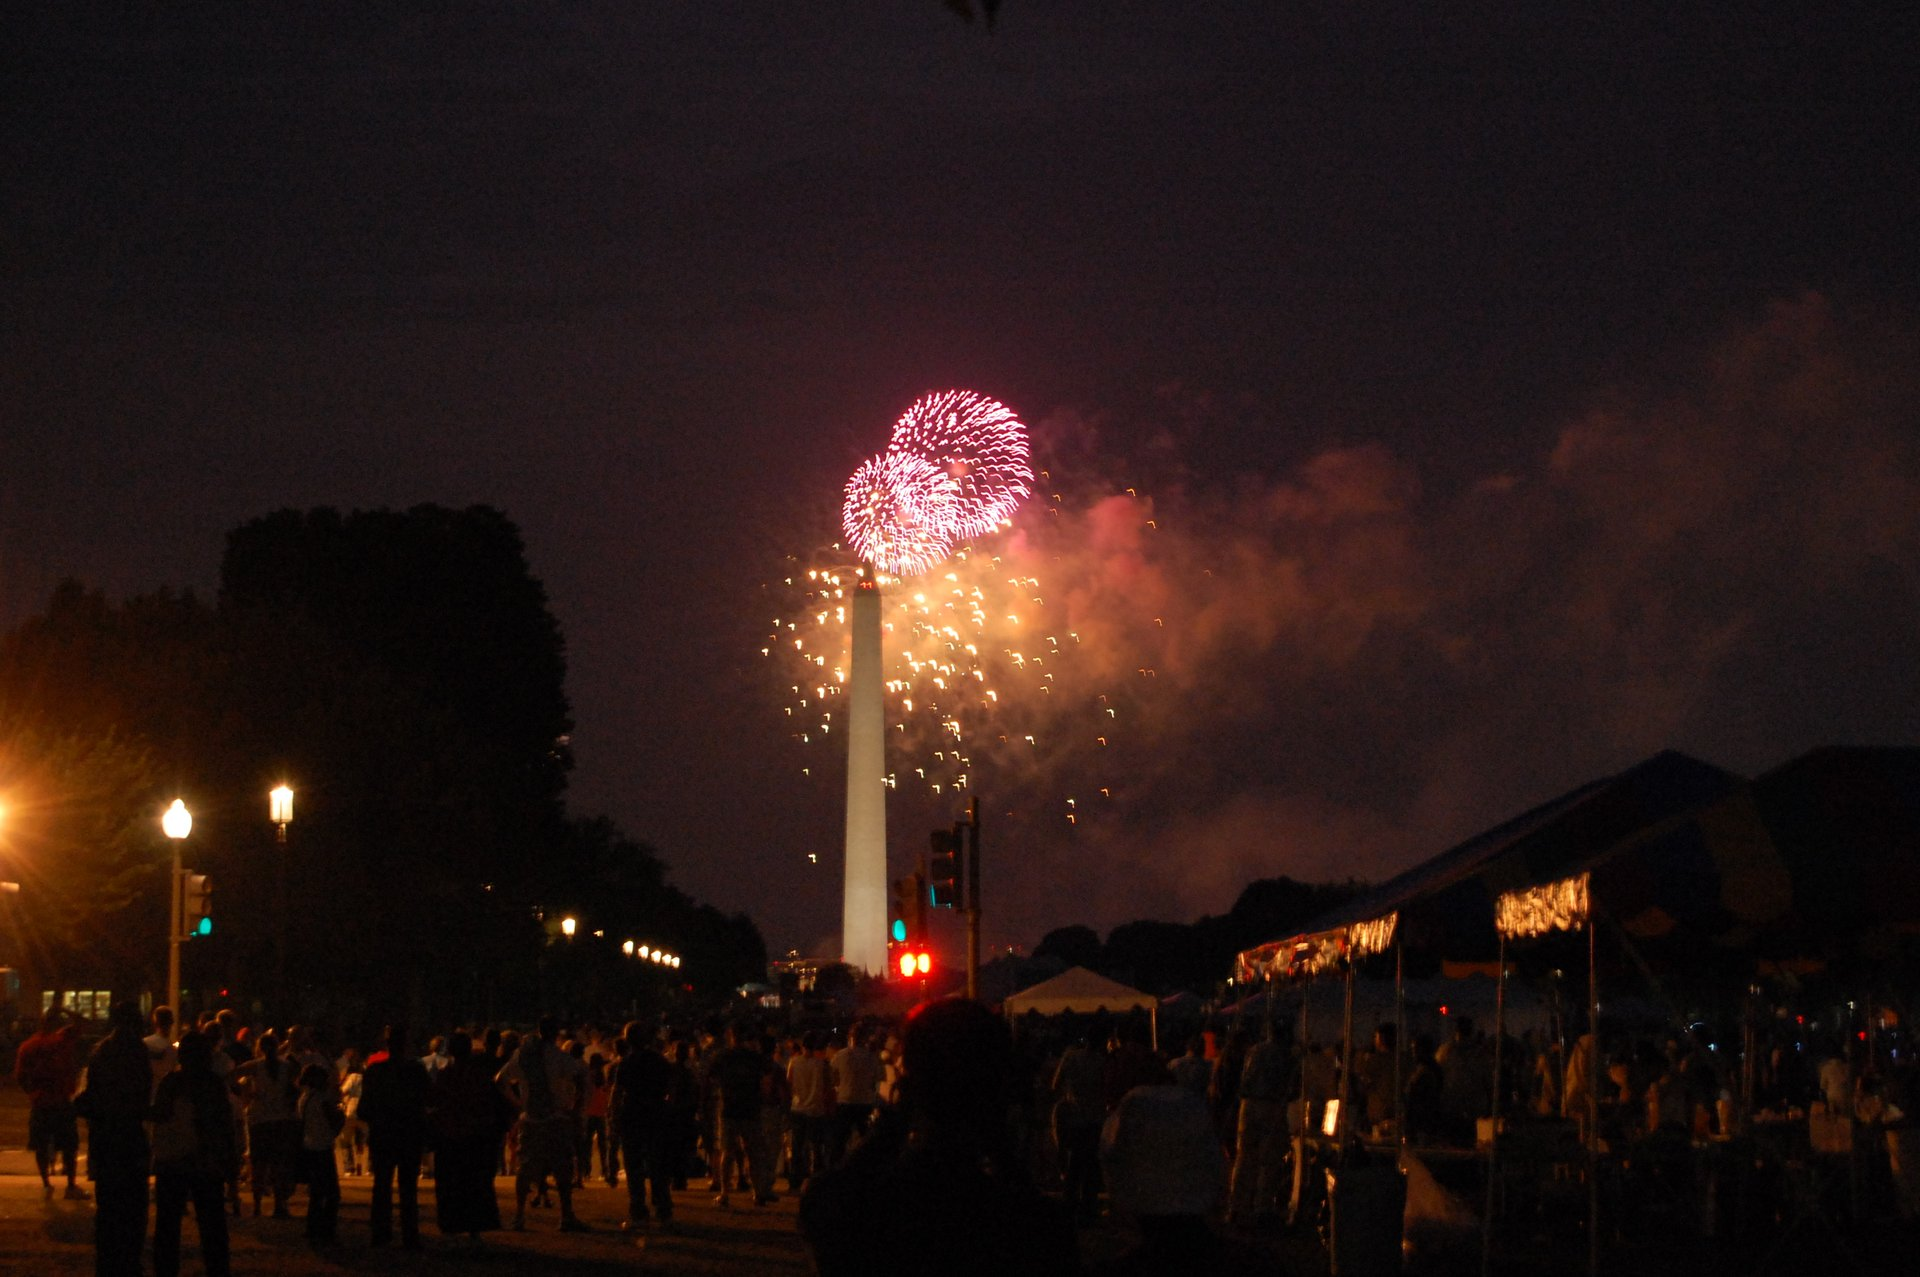 Best time for 4th of July Concert, Parade & Fireworks in Washington, D.C. 2019